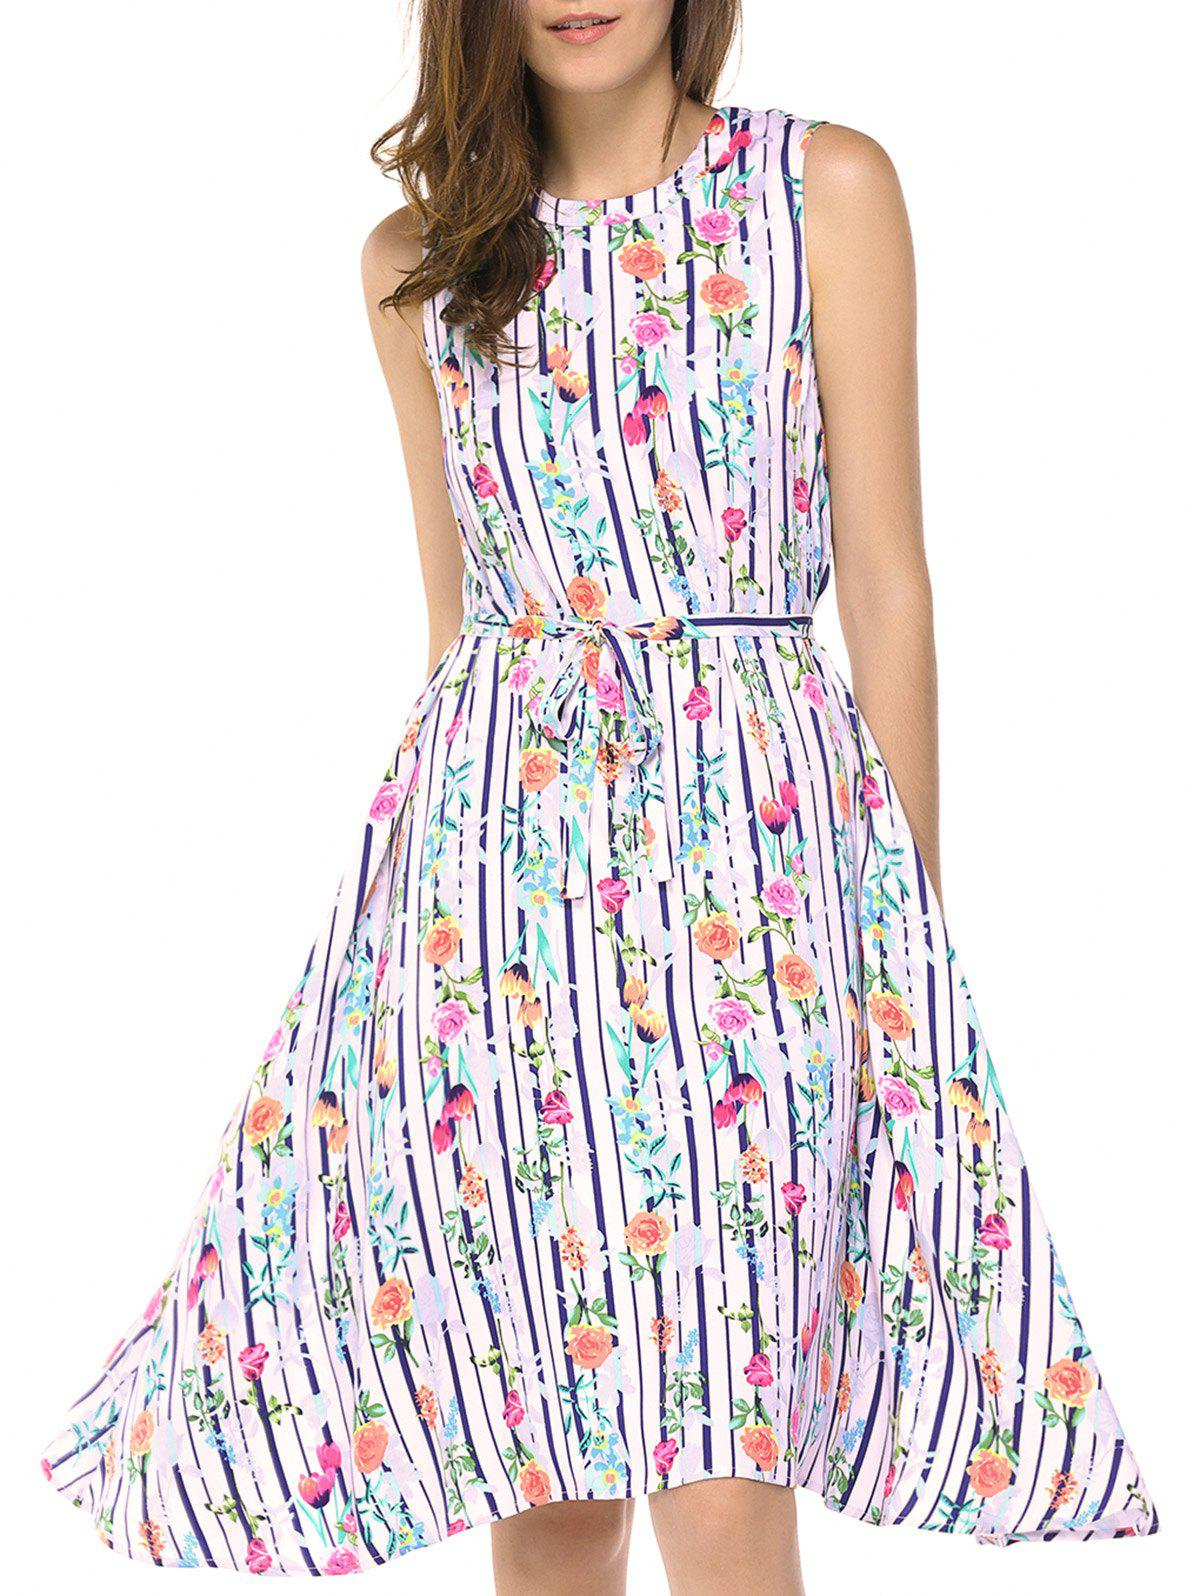 Fashionable Women's Round Neck Sleeveless Flowers Print Dresses - STRIPE L